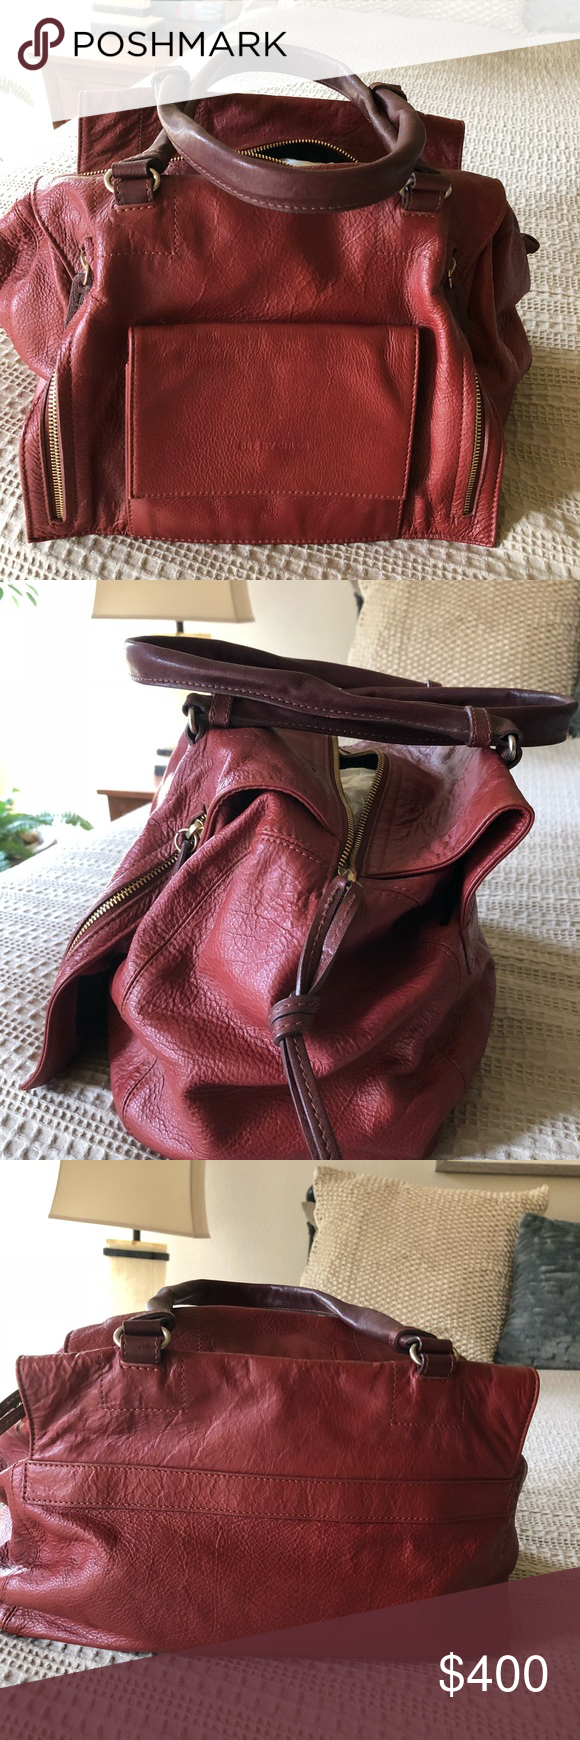 """See by Chloe handbag Gorgeous See by Chloe handbag. All leather, burned orange color with lots of compartments inside and outside. Never worn. 17.5""""x9""""x8"""" See By Chloe Bags Hobos #seebychloe"""